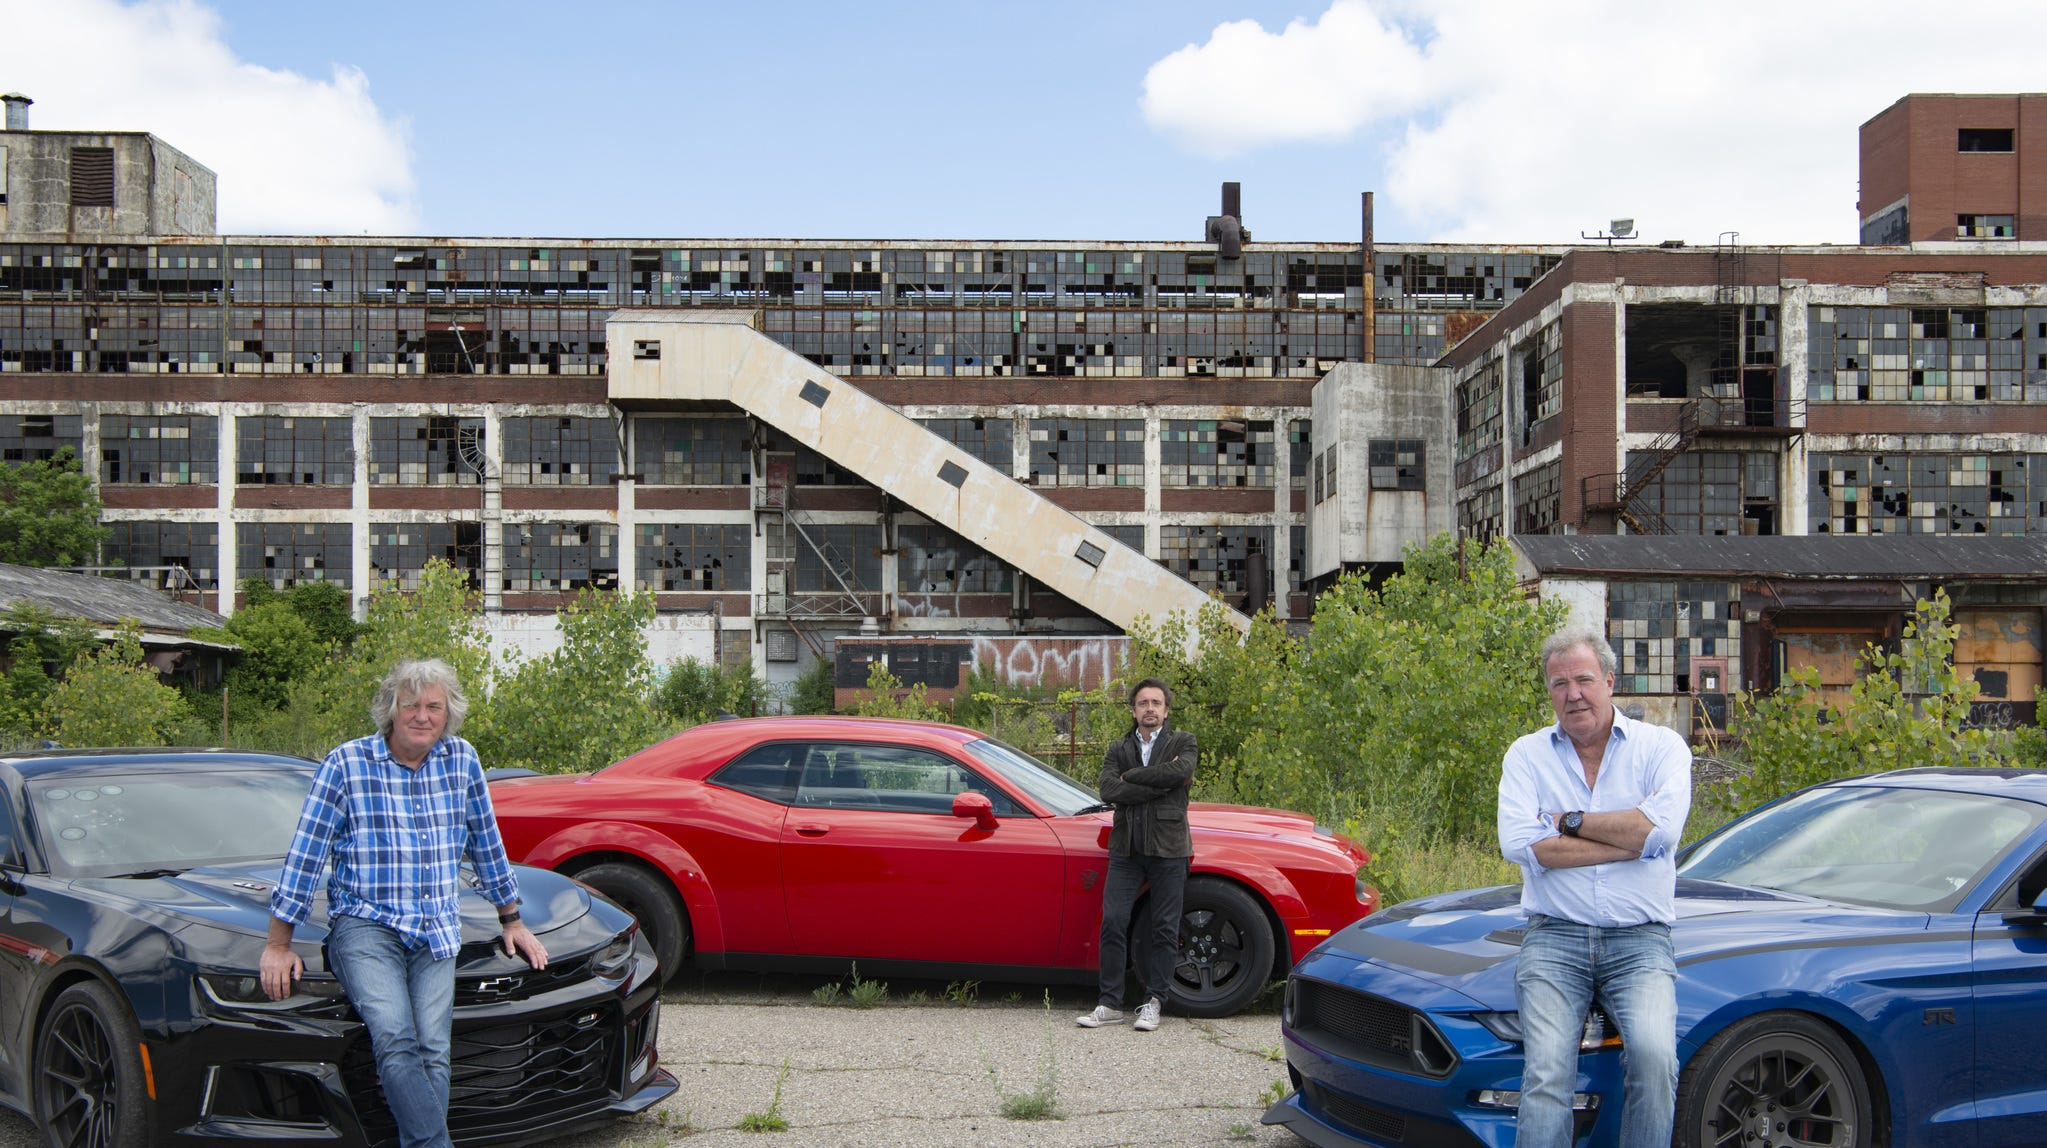 The Amazon Prime series 'The Grand Tour' visits Detroit in its season opener, a lovefest for muscle cars by British hosts.